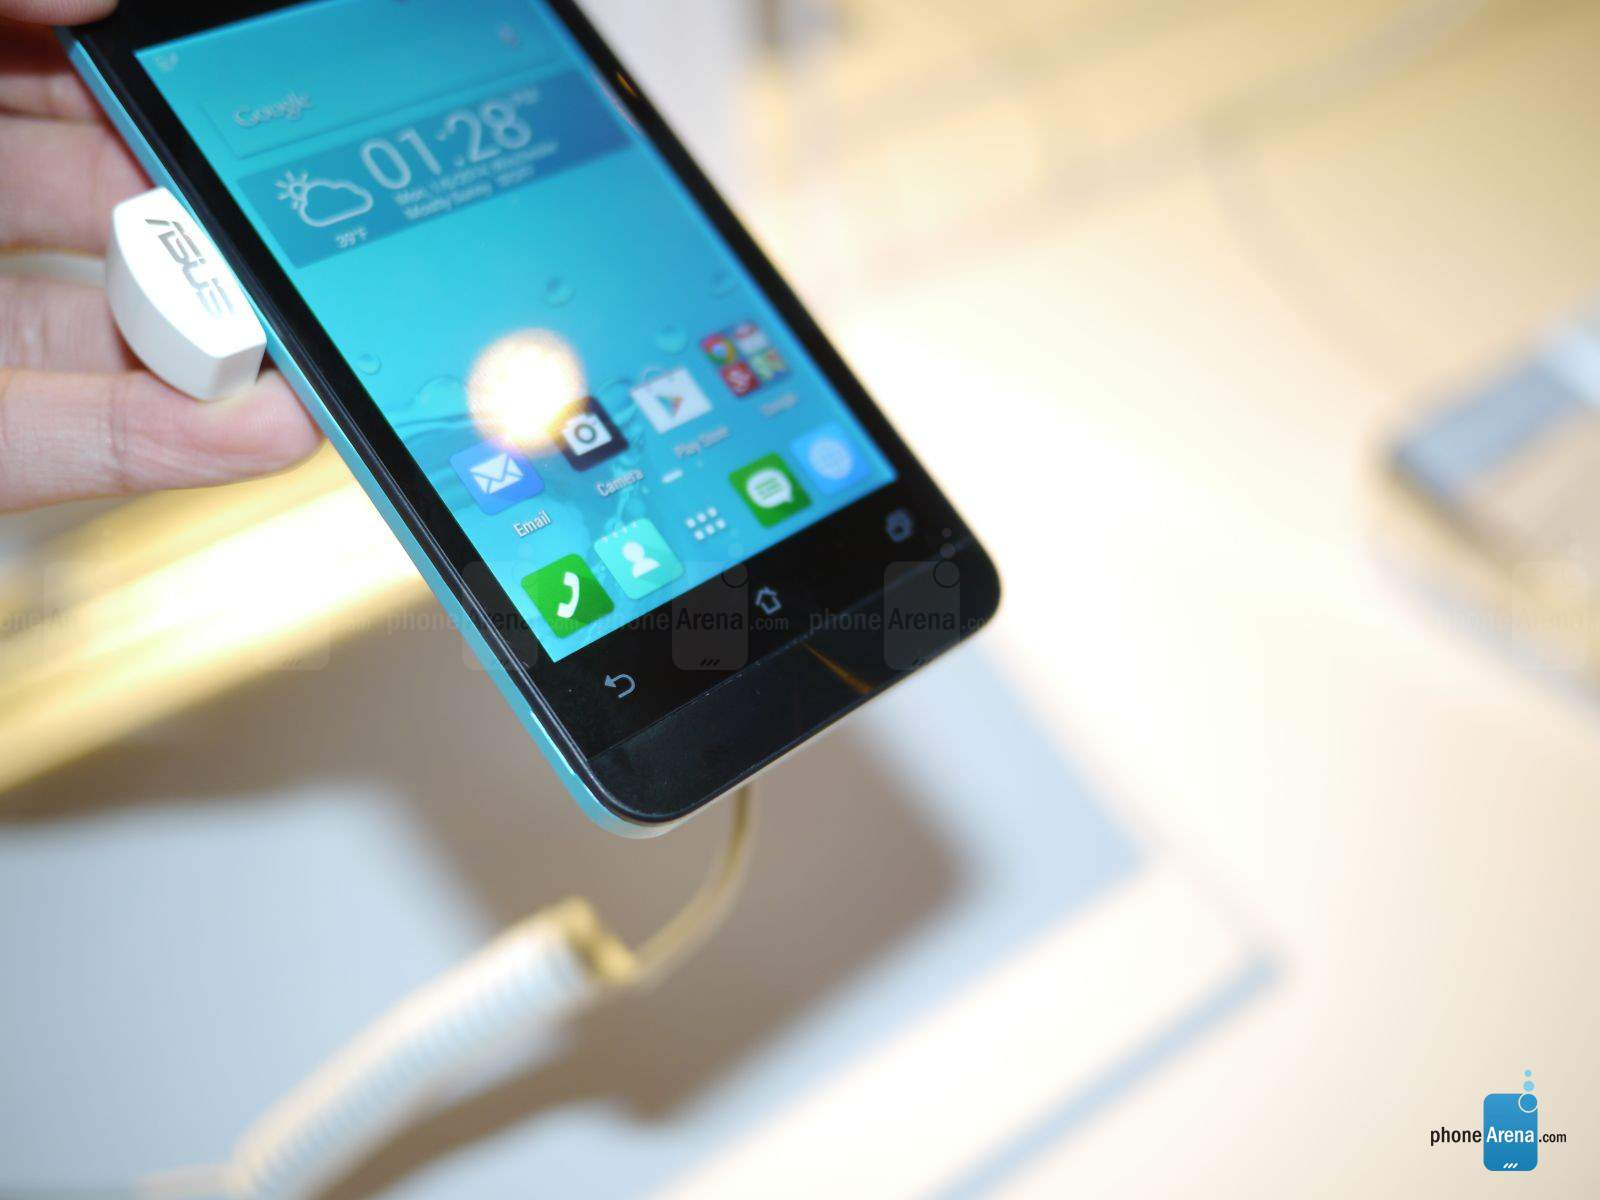 Asus Zenfone 4 - Full Specifications and Price 1